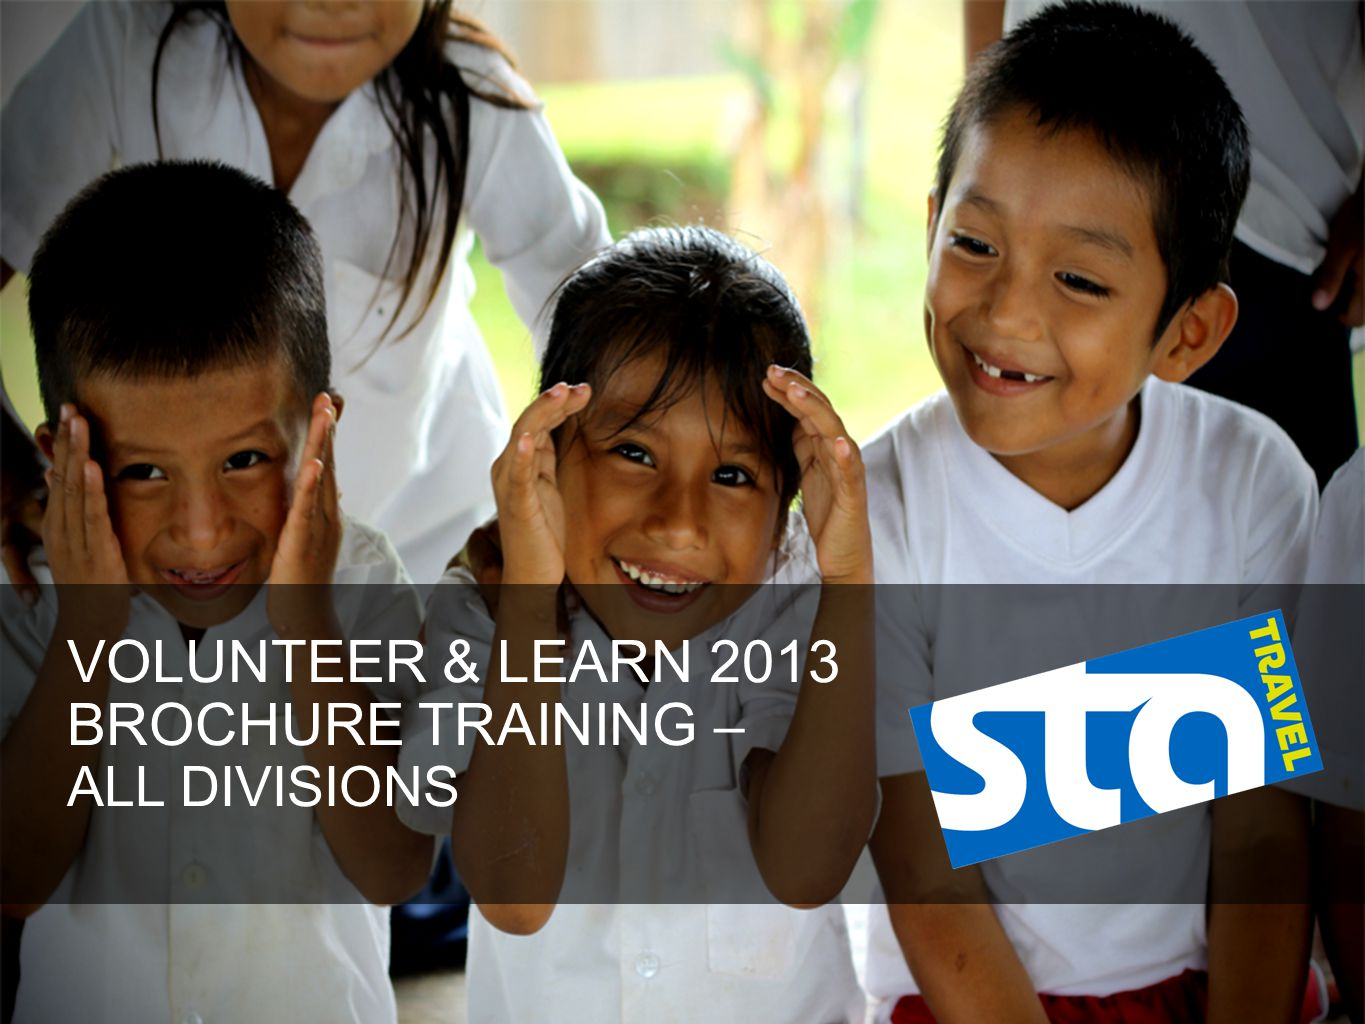 TRAINING OVERVIEW There are 3 sections covering: Volunteering, languages and learn a skill You'll need audio for the video Refer to the Volunteer & Learn brochure as your reference